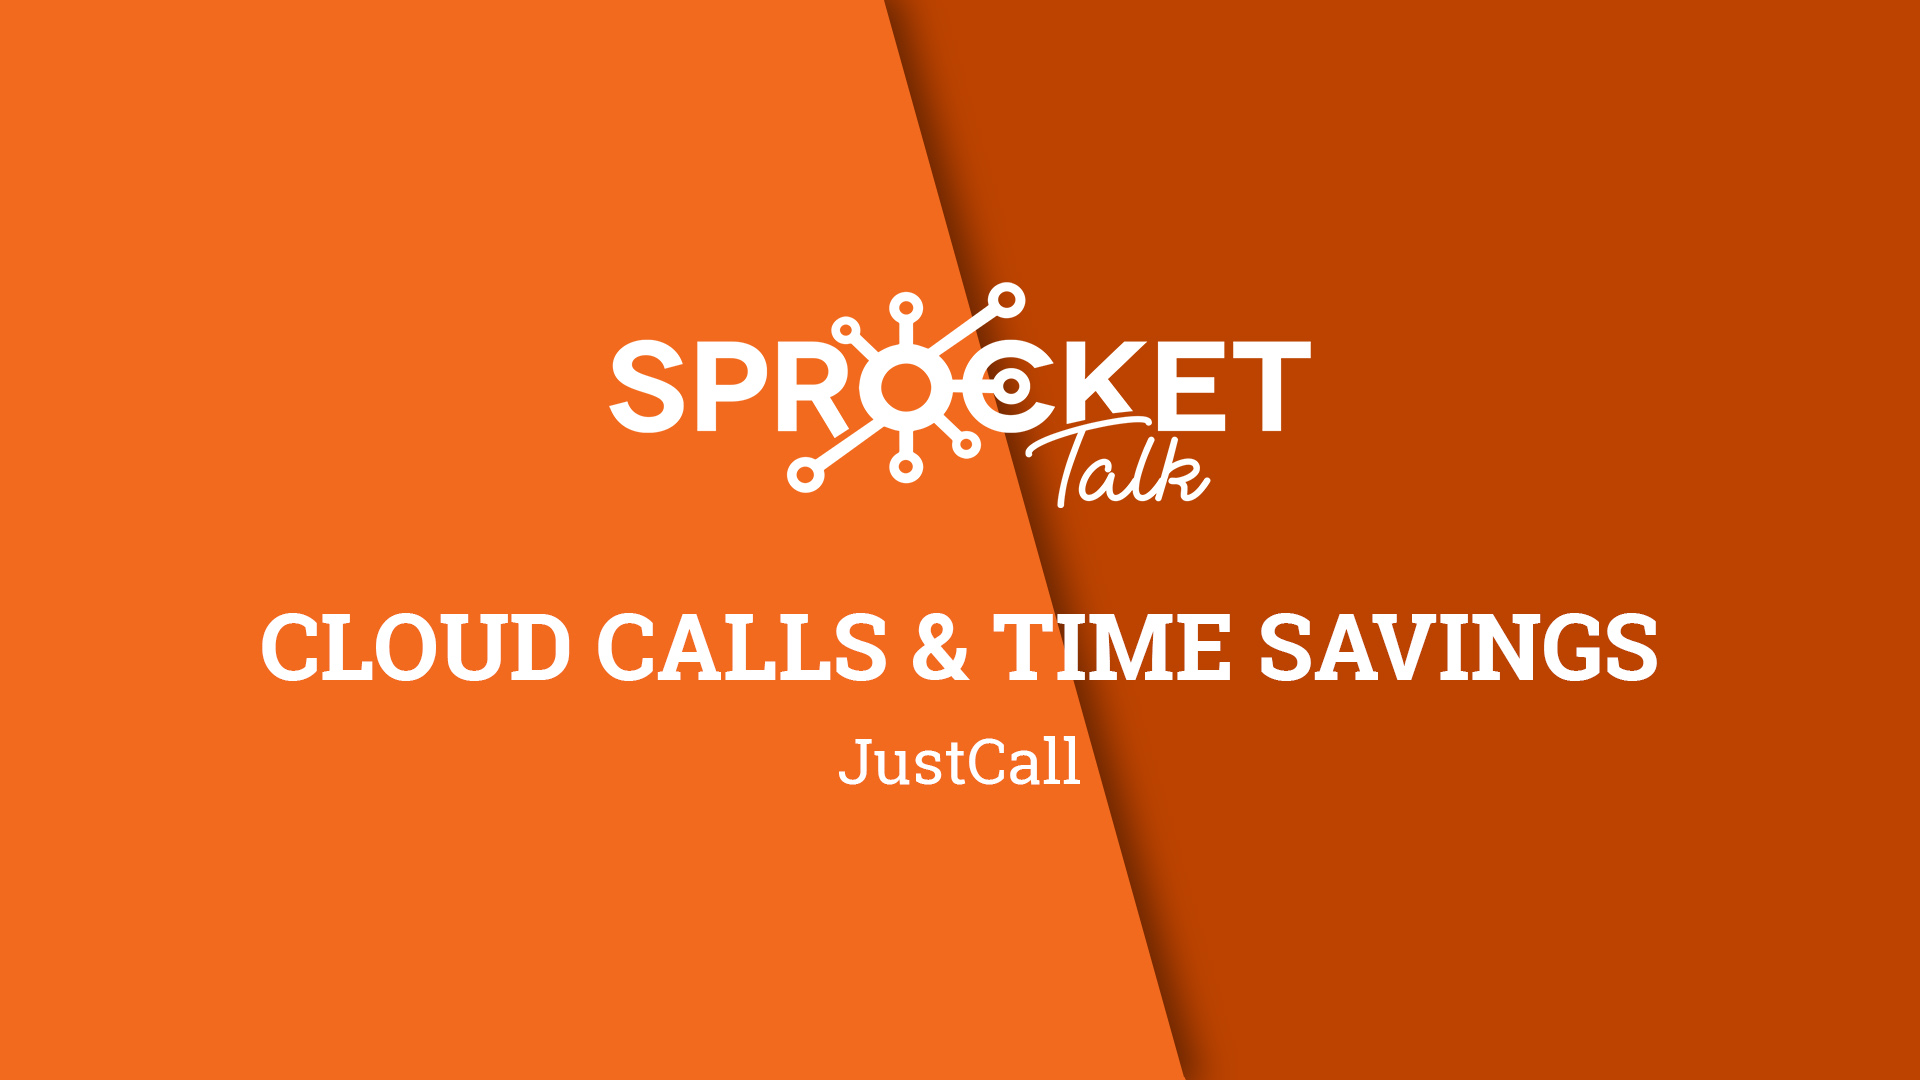 JustCall | Cloud Calls & Time Savings